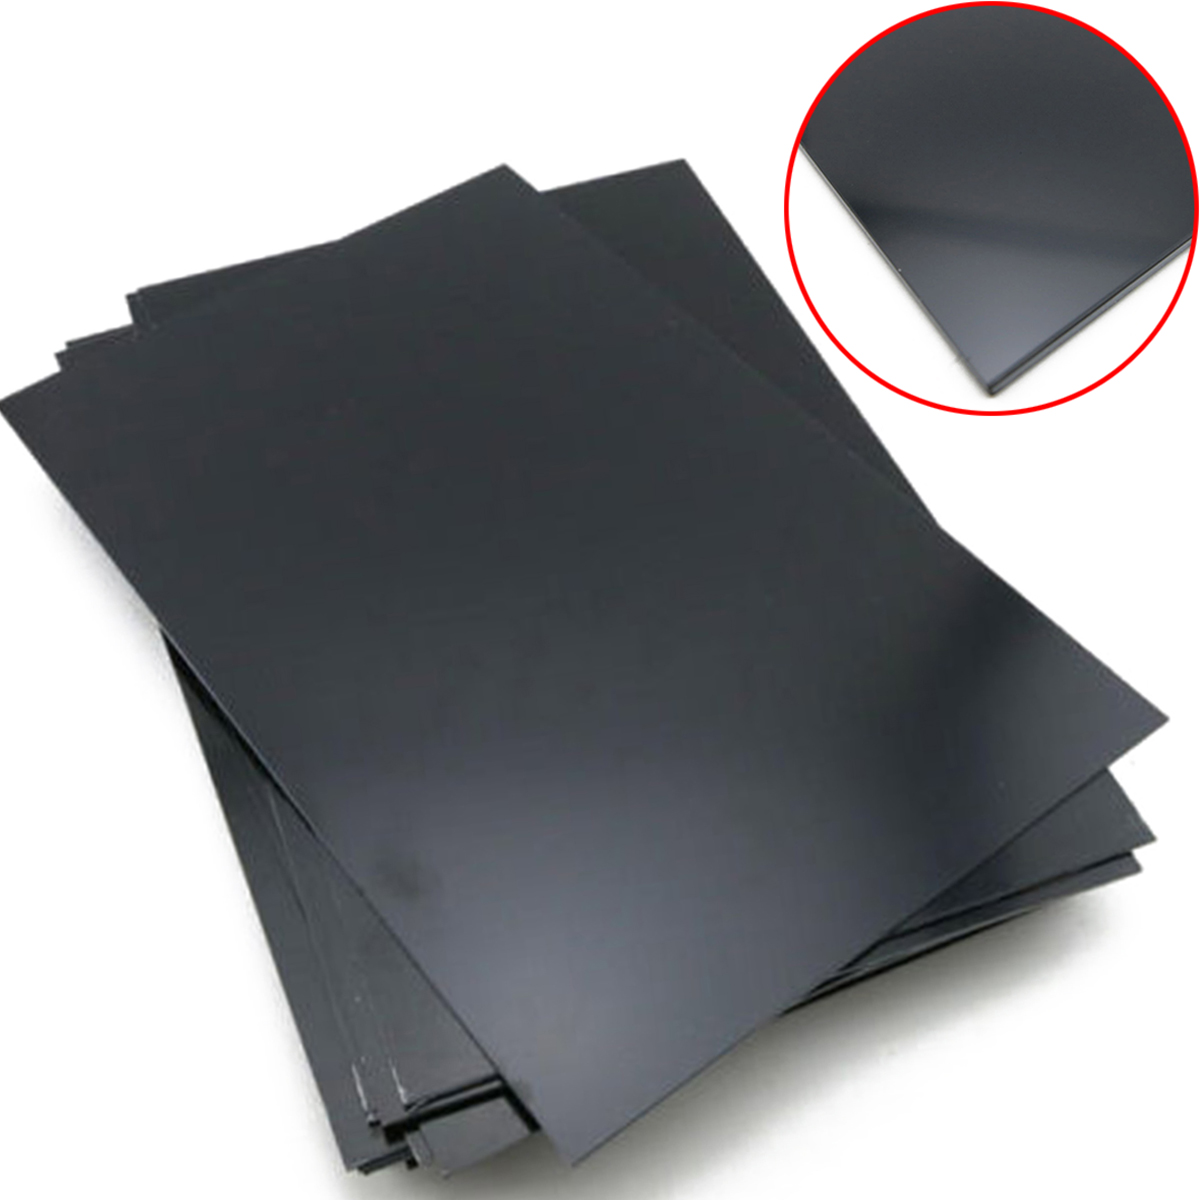 1pcs New  0.5mm Thickness Durable Black ABS Styrene Plastic Flat Sheet Plate